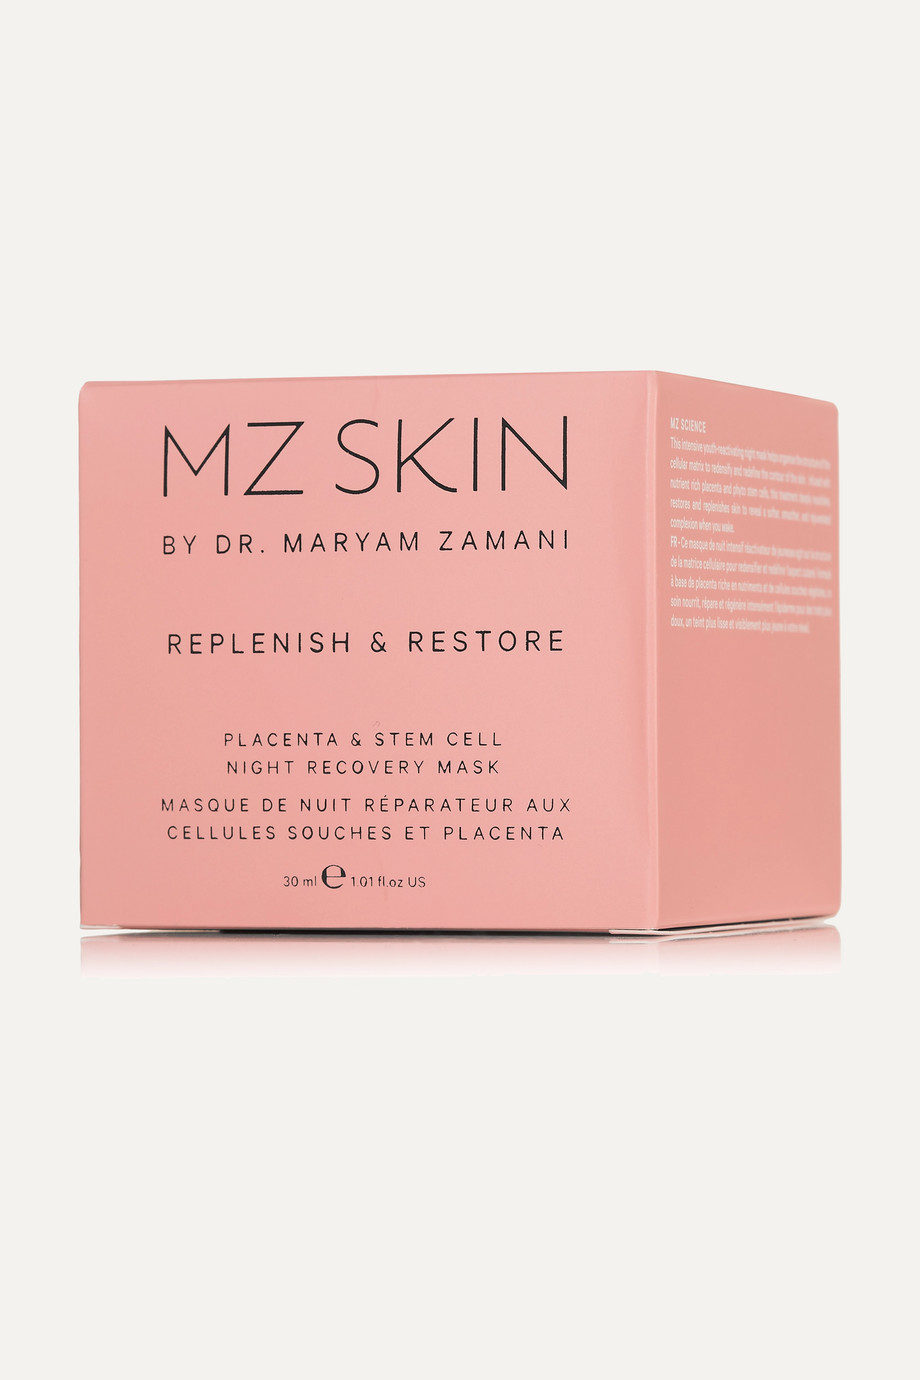 MZ SKIN Replenish & Restore Placenta & Stem Cell Night Recovery Mask, 30ml